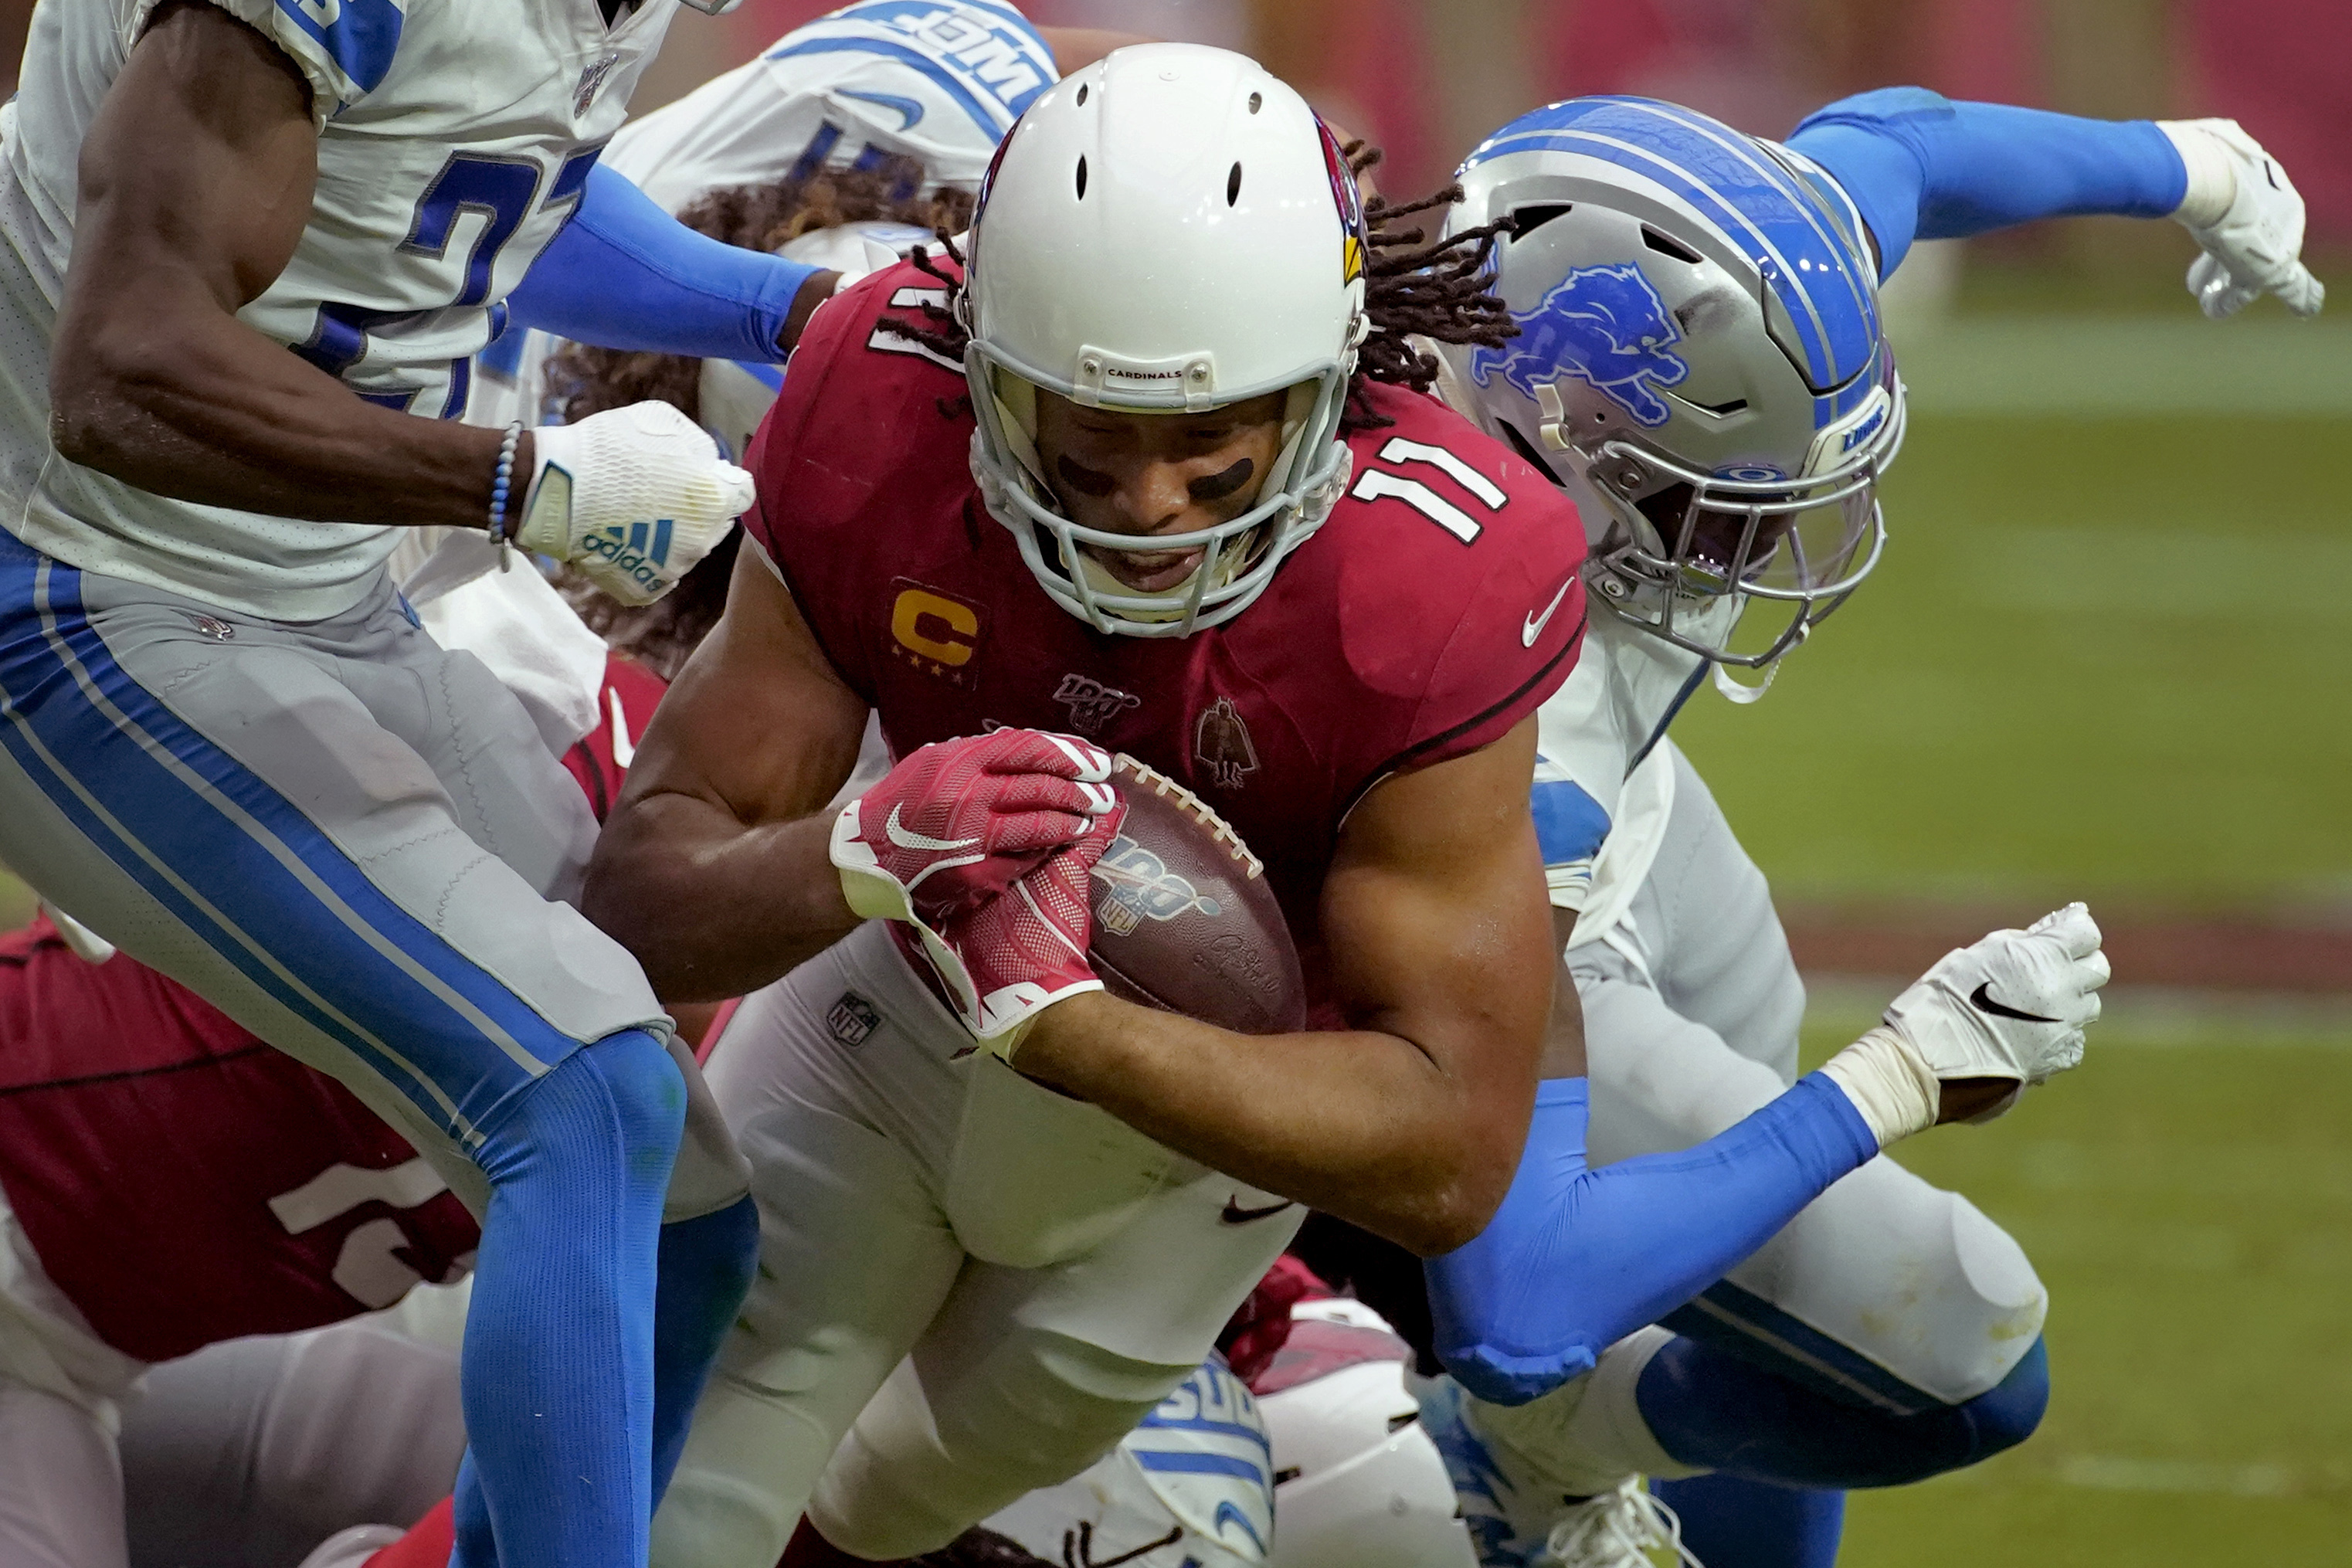 Blast from past: Fitzgerald, Suggs make plays for Cardinals